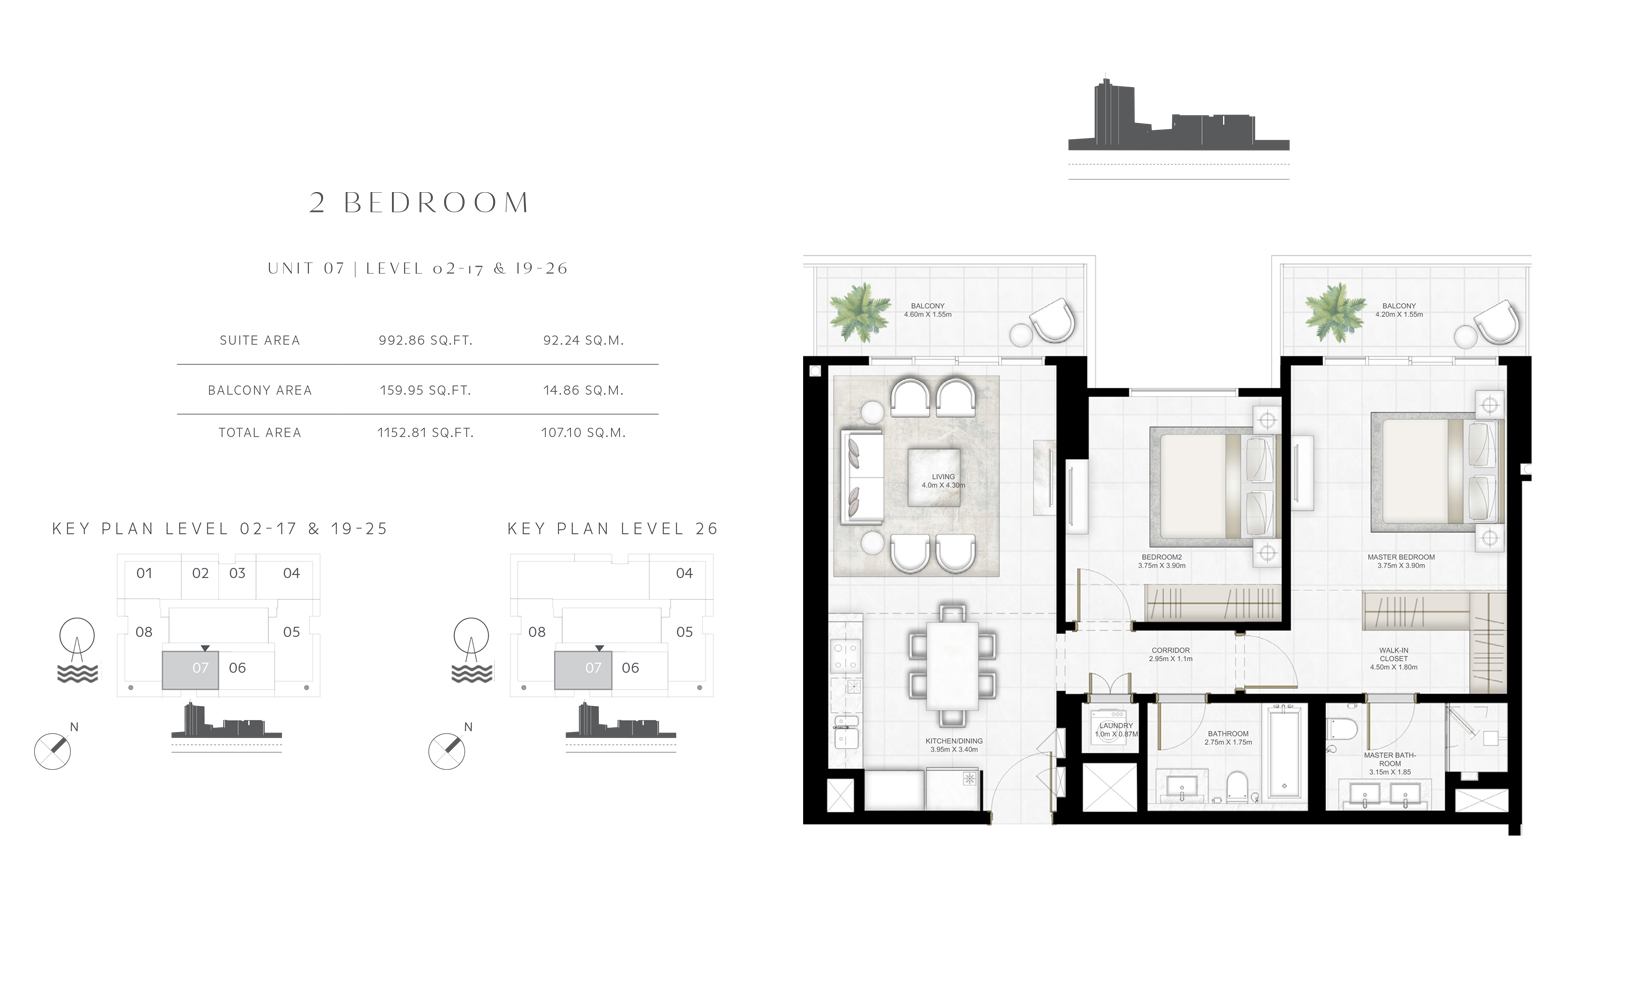 2 Bedroom Unit 07 Level 02-17 & 19-26 Size 1152.81 sq.ft